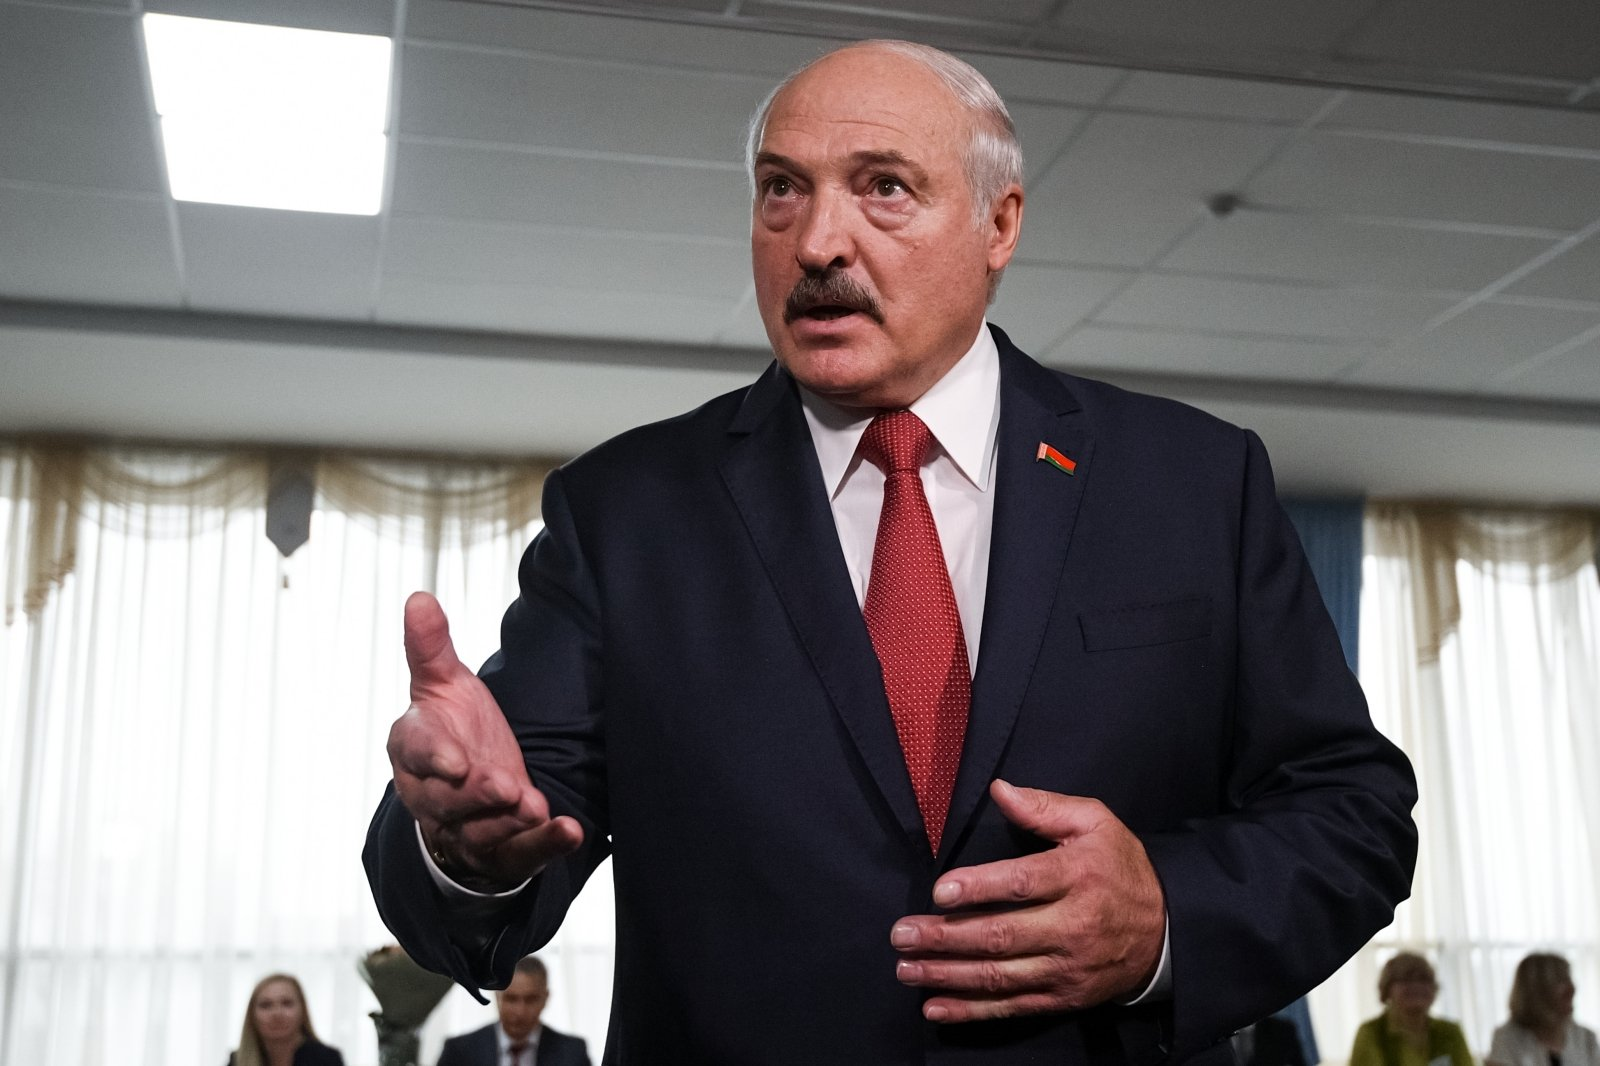 Lukashenko told what he expects from integration with Russia